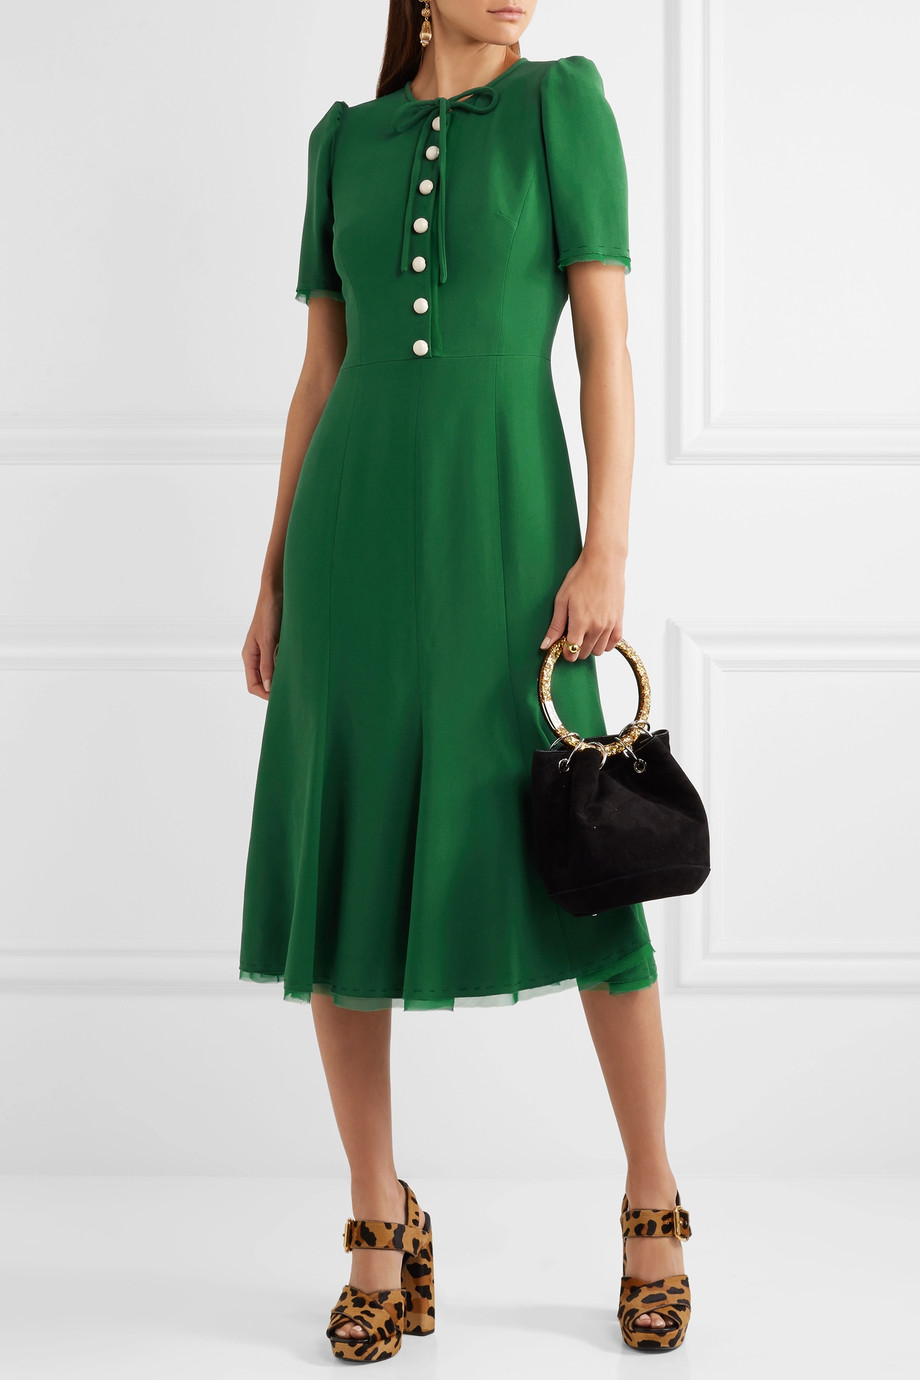 D&G green midi dress